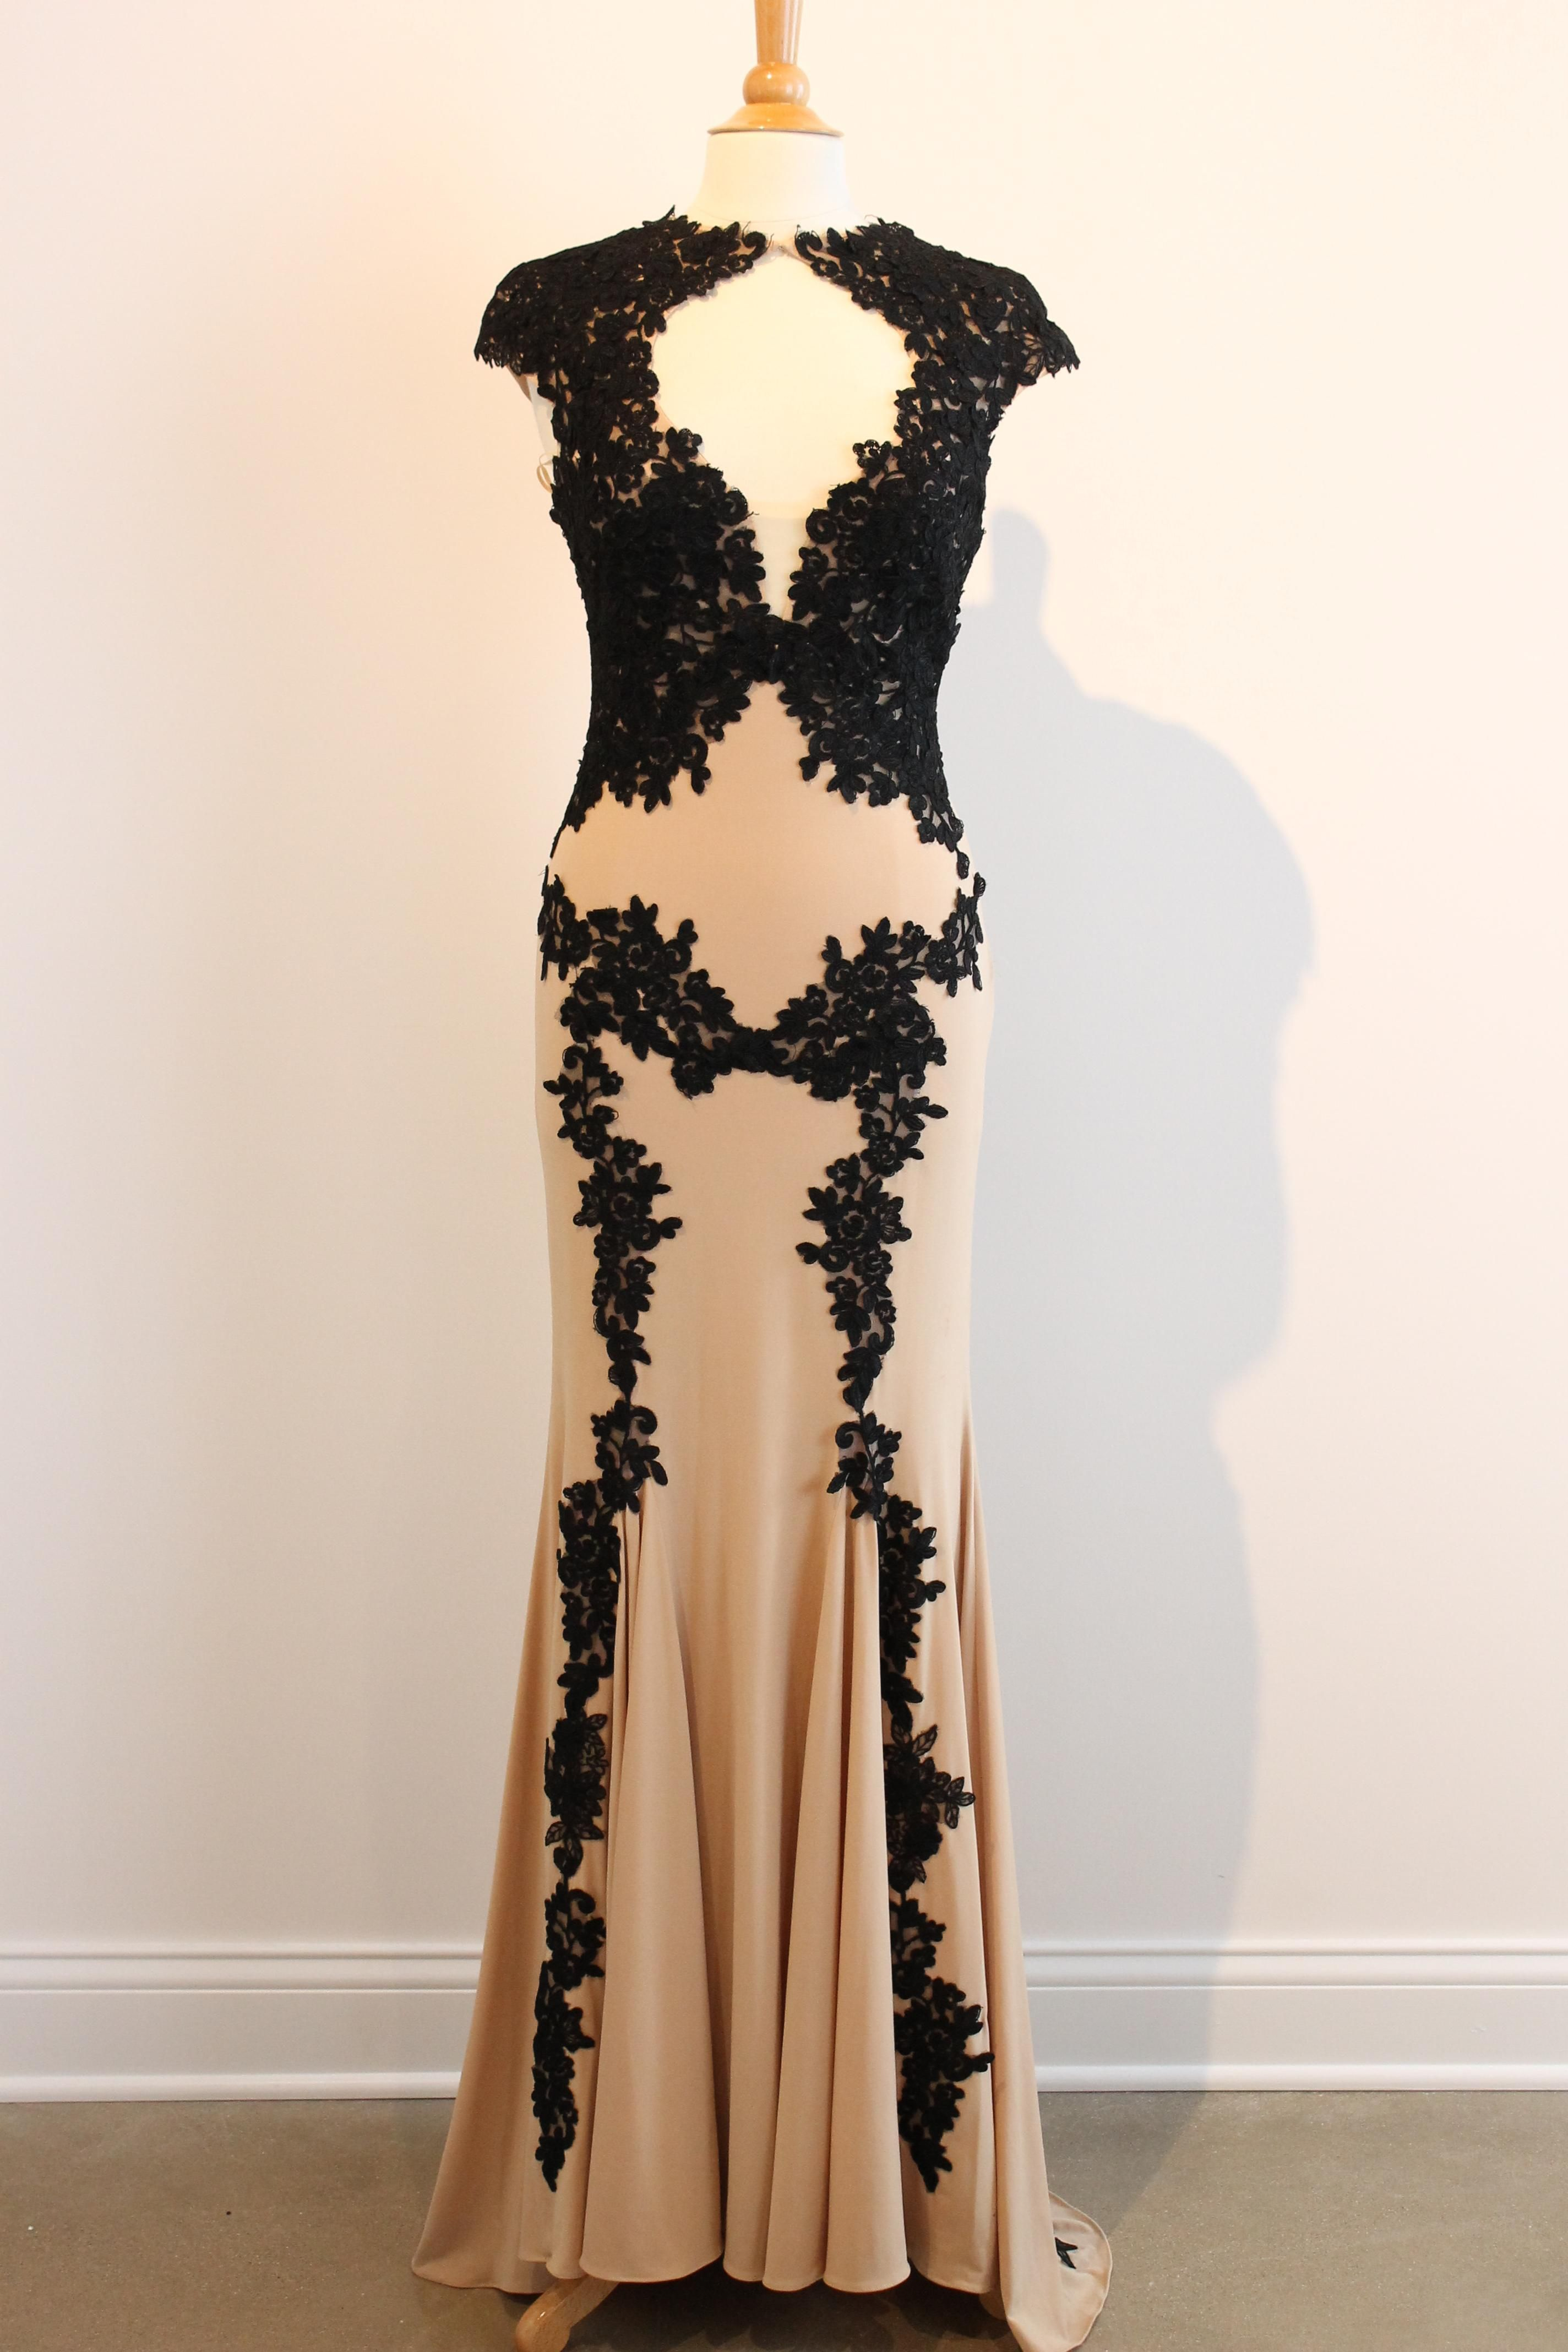 Nudeblack formal dress front lace authenticity and nude